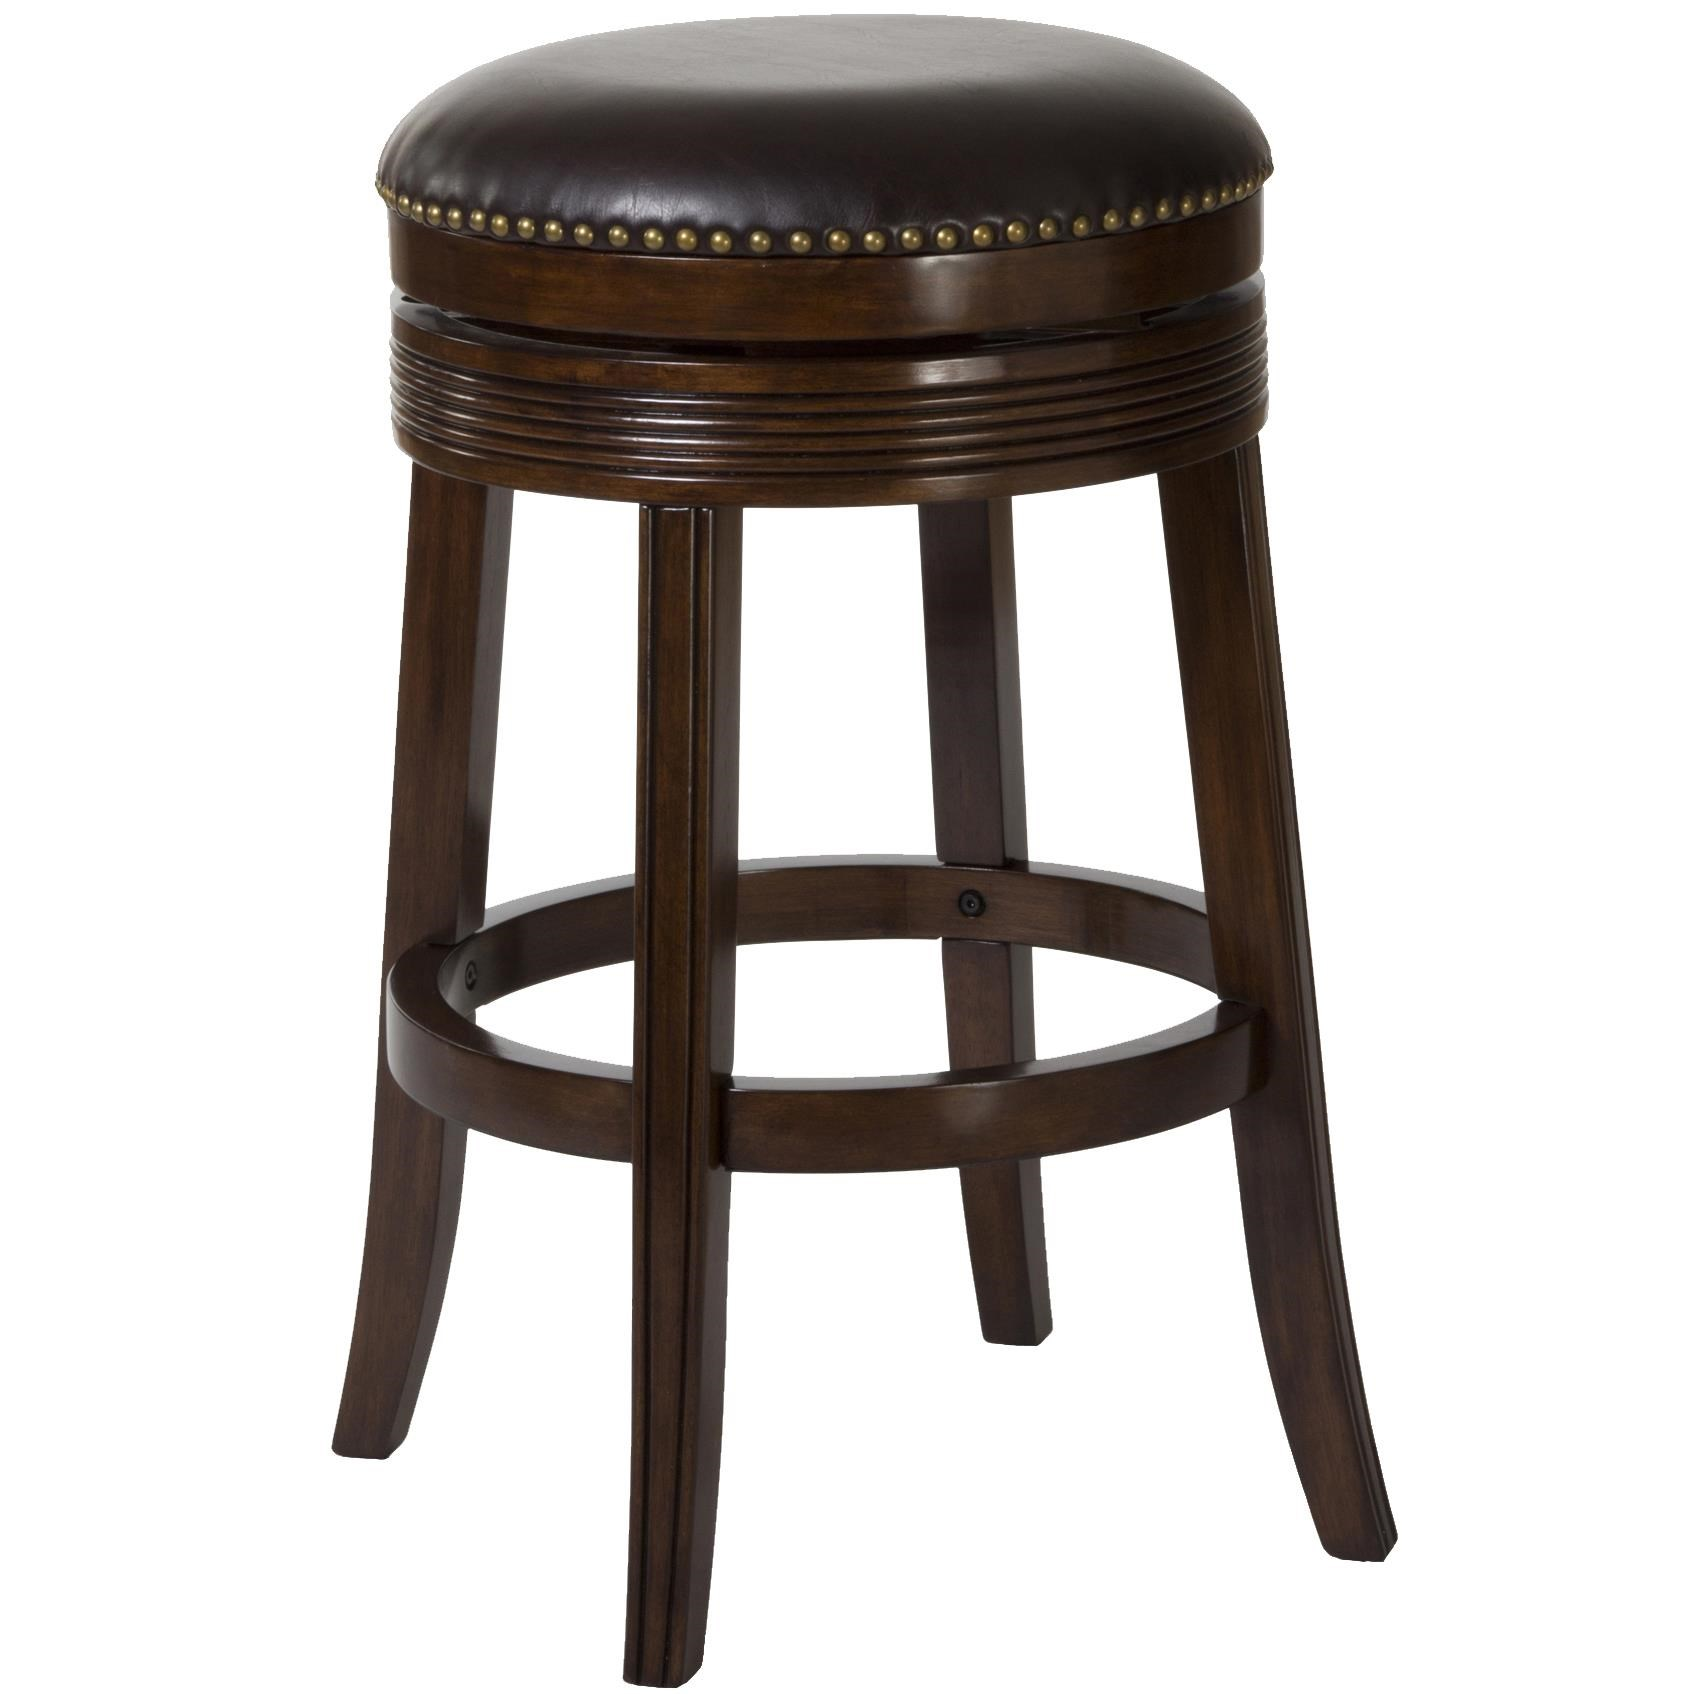 Hillsdale Backless Bar Stools 26  Tillman Backless Swivel Counter Stool  sc 1 st  Royal Furniture & Hillsdale Backless Bar Stools 26